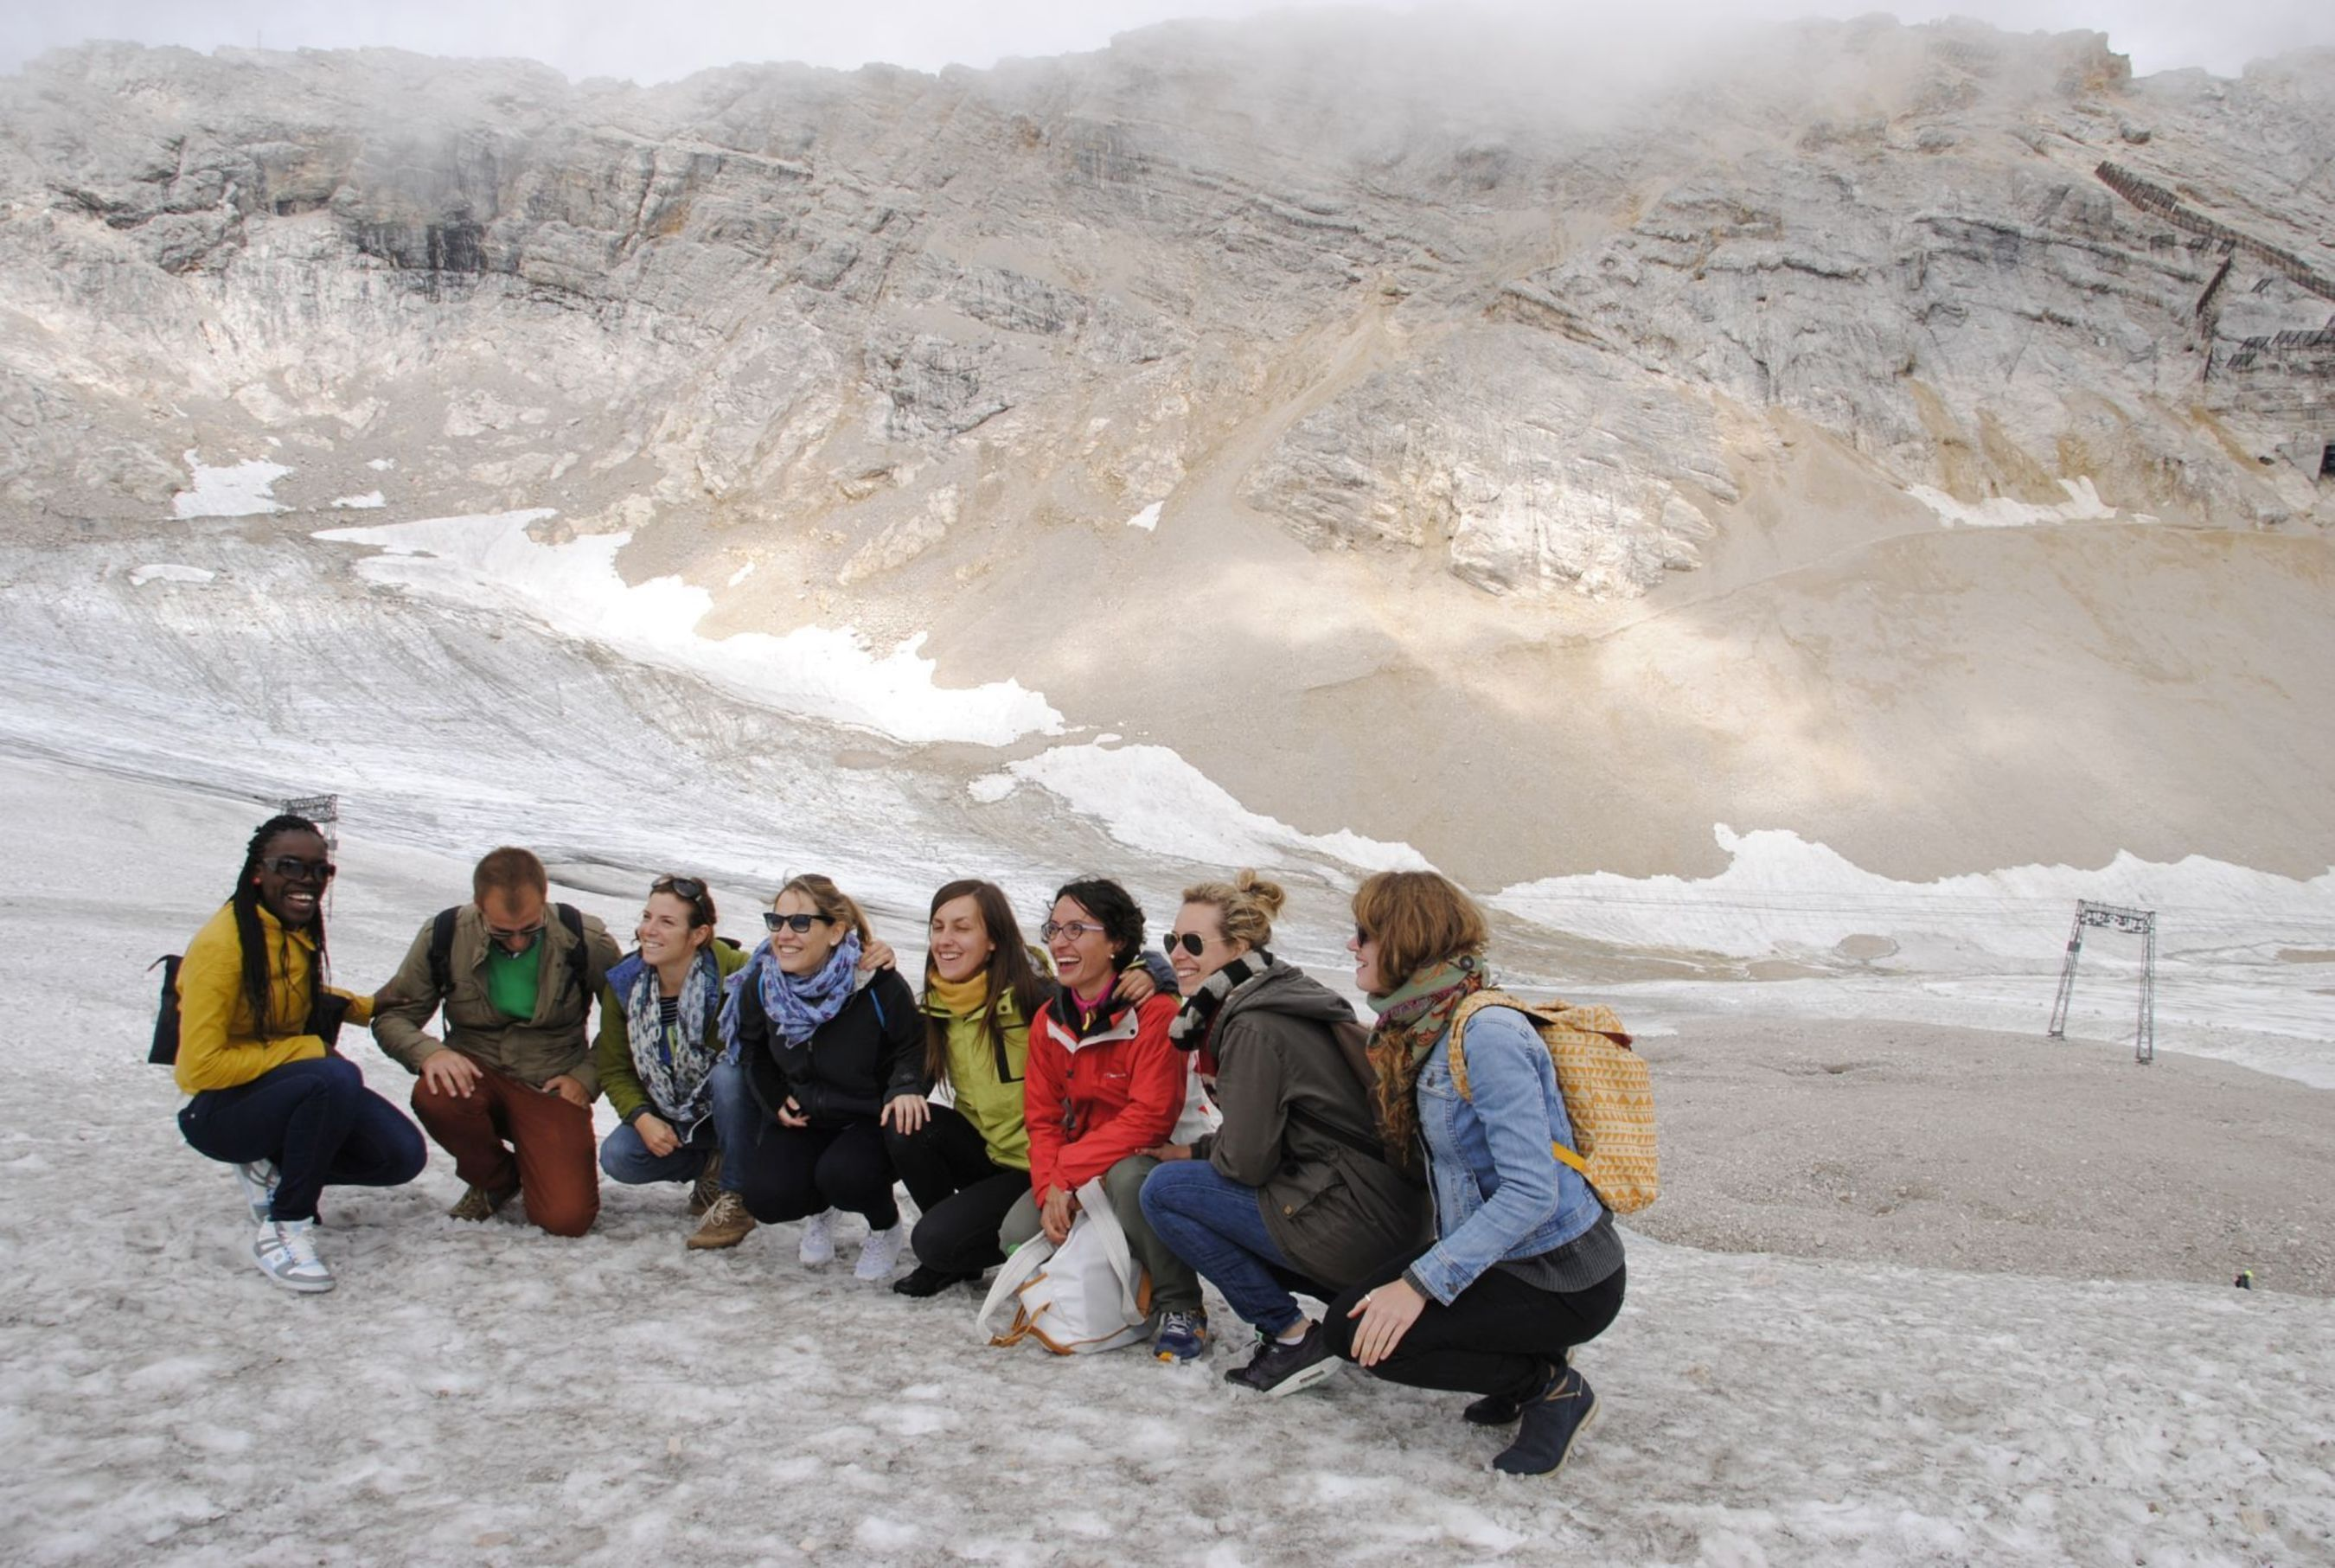 """Students and graduates visit the German Meteorological Service (DWD) on Germany's highest mountain """"Zugspitze"""" near Munich, Germany. During the 2015 edition of Climate-KIC's European """"The Journey"""" summer school programme international participants will offer a unique combination of science and entrepreneurship. It will be a crash course to identify opportunities in climate change and how to set up a startup to commercialize solutions. (PRNewsFoto/Climate-KIC)"""